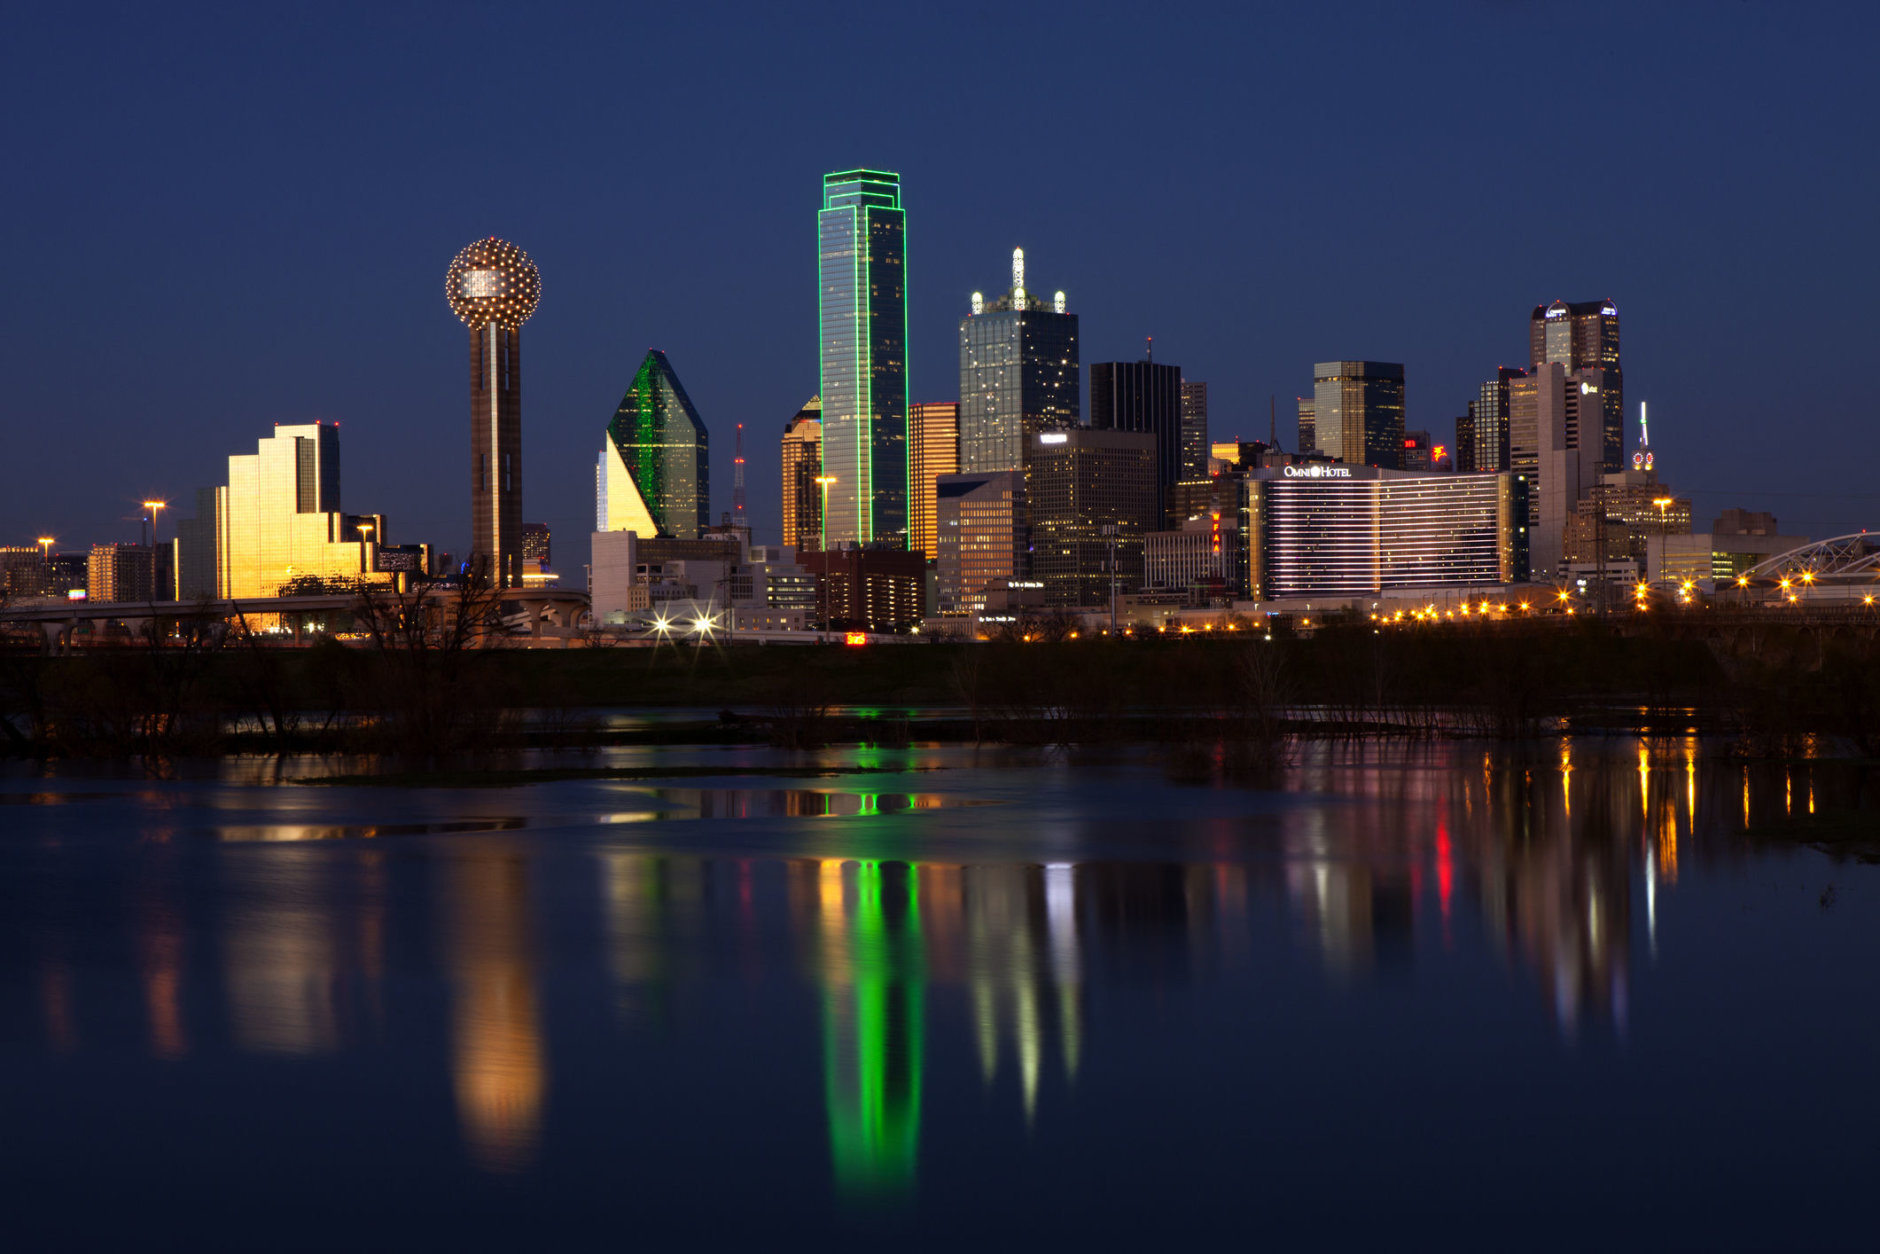 Downtowwn Dallas, Texas at night with the Trinity River in the forground